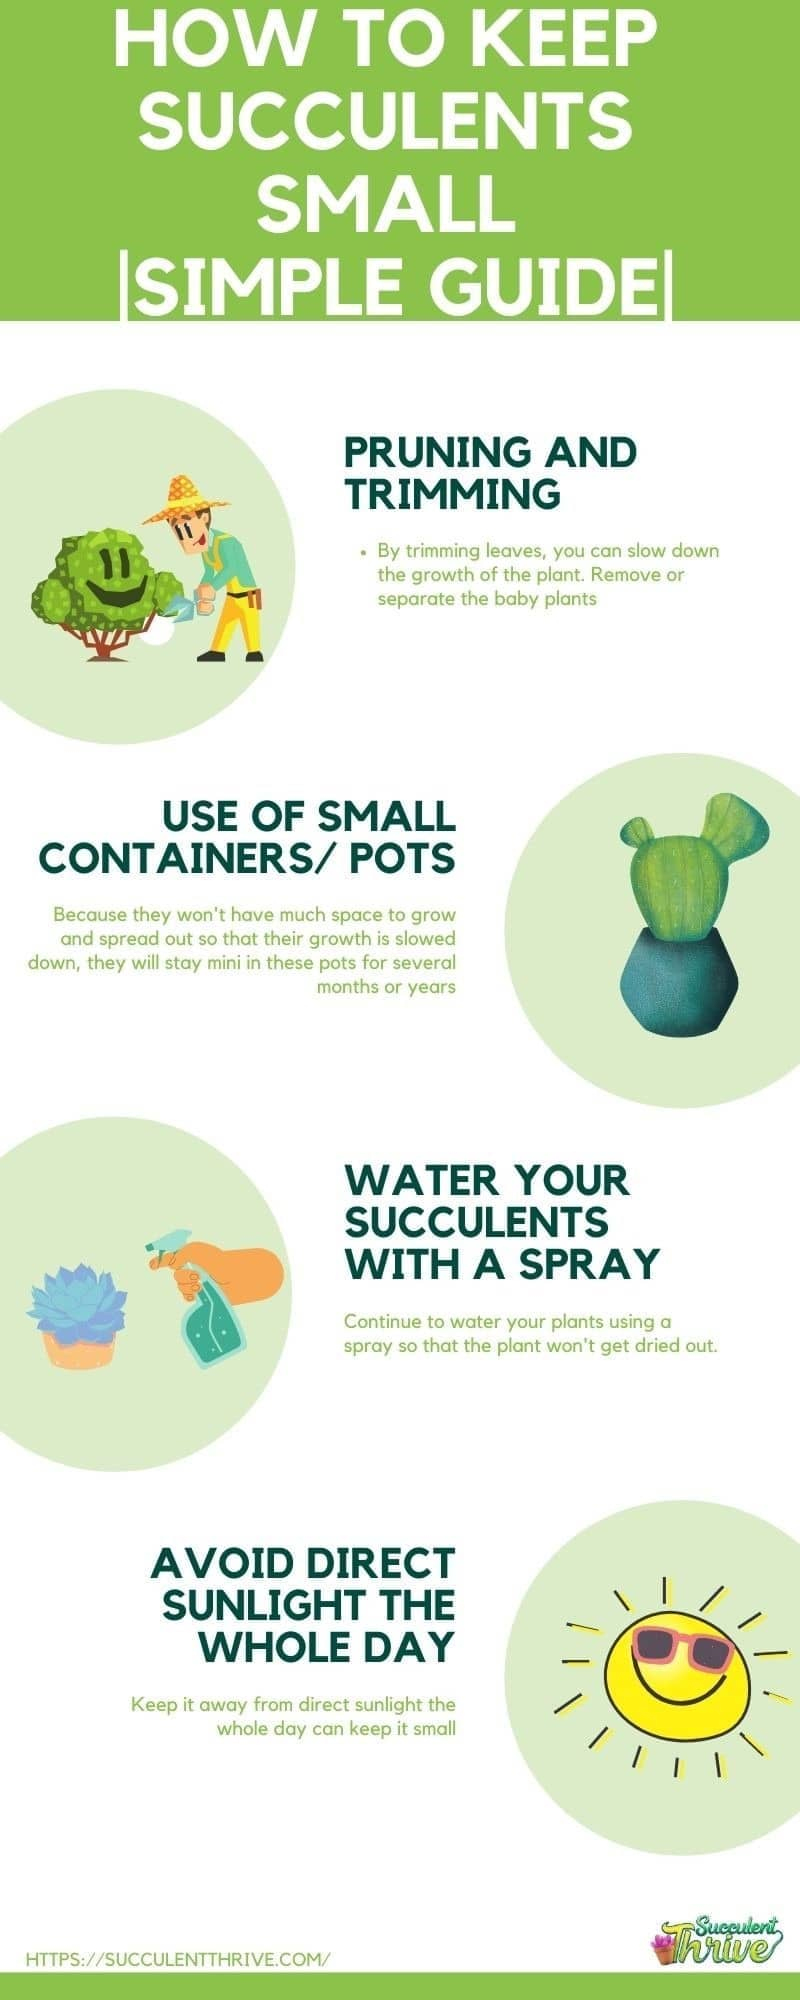 _How to Keep Succulents Small and manageable_ Simple Guide infographic